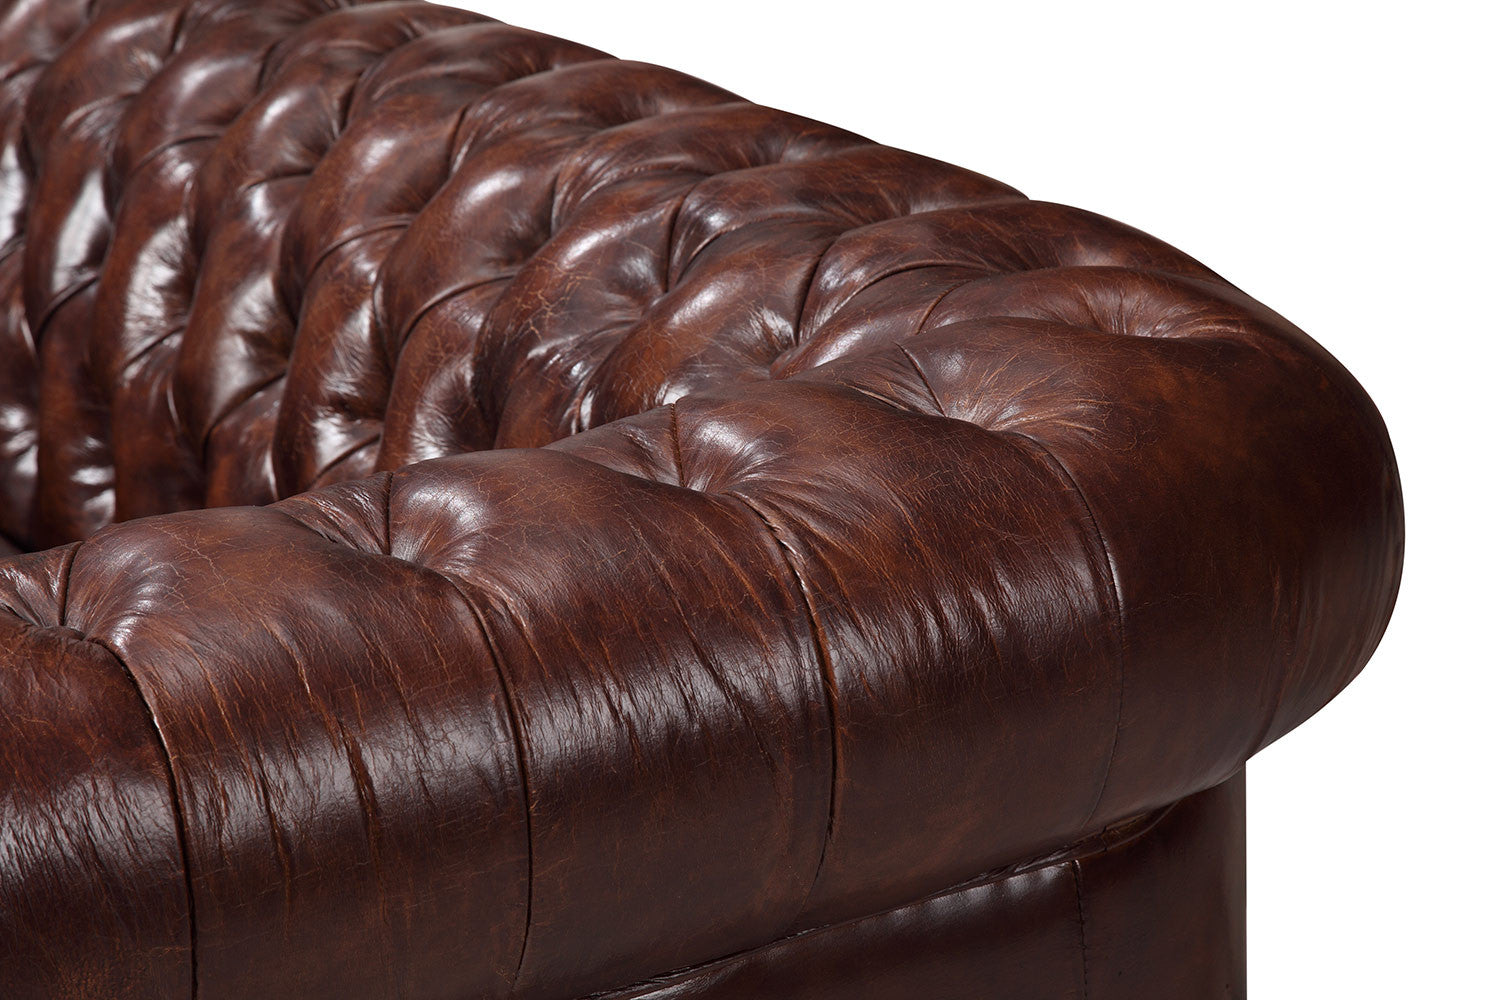 707dbb046682 Tufts of the Original Chesterfield Loveseat